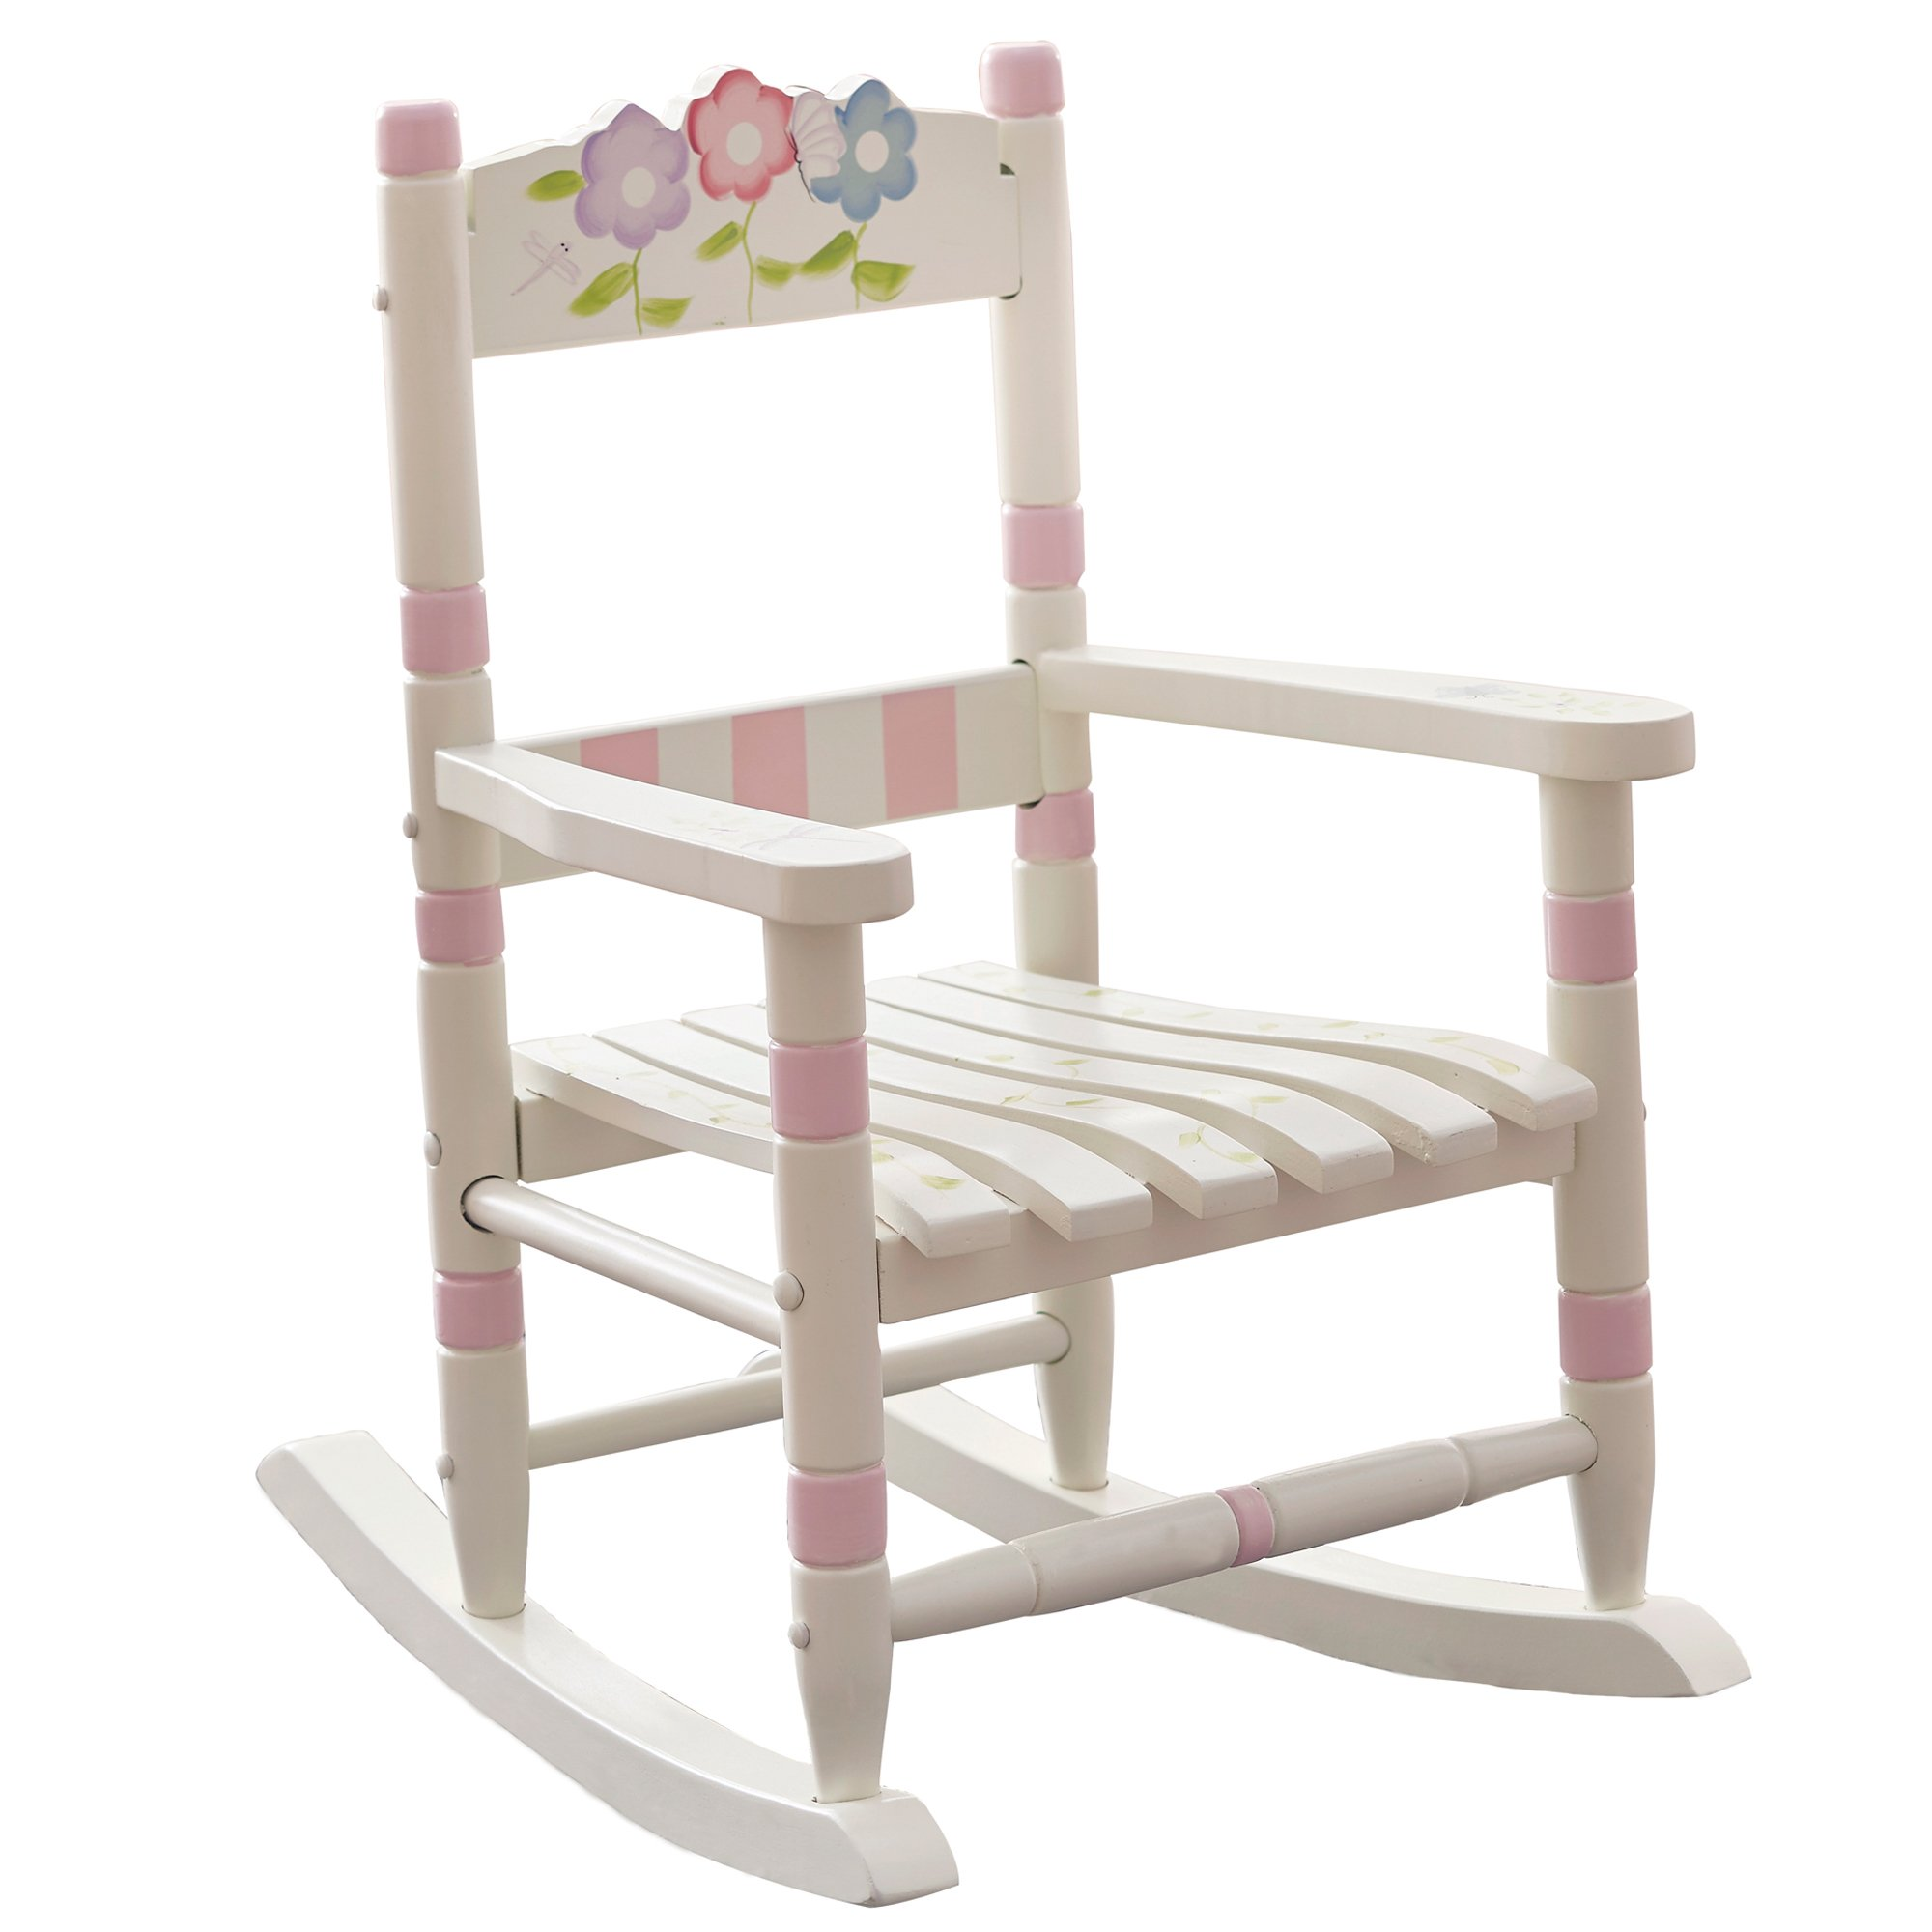 Teamson Design Corp Fantasy Fields - Bouquet Thematic Kids Wooden Rocking Chair Imagination Inspiring Hand Crafted & Hand Painted Details Non-Toxic, Lead Free Water-based Paint